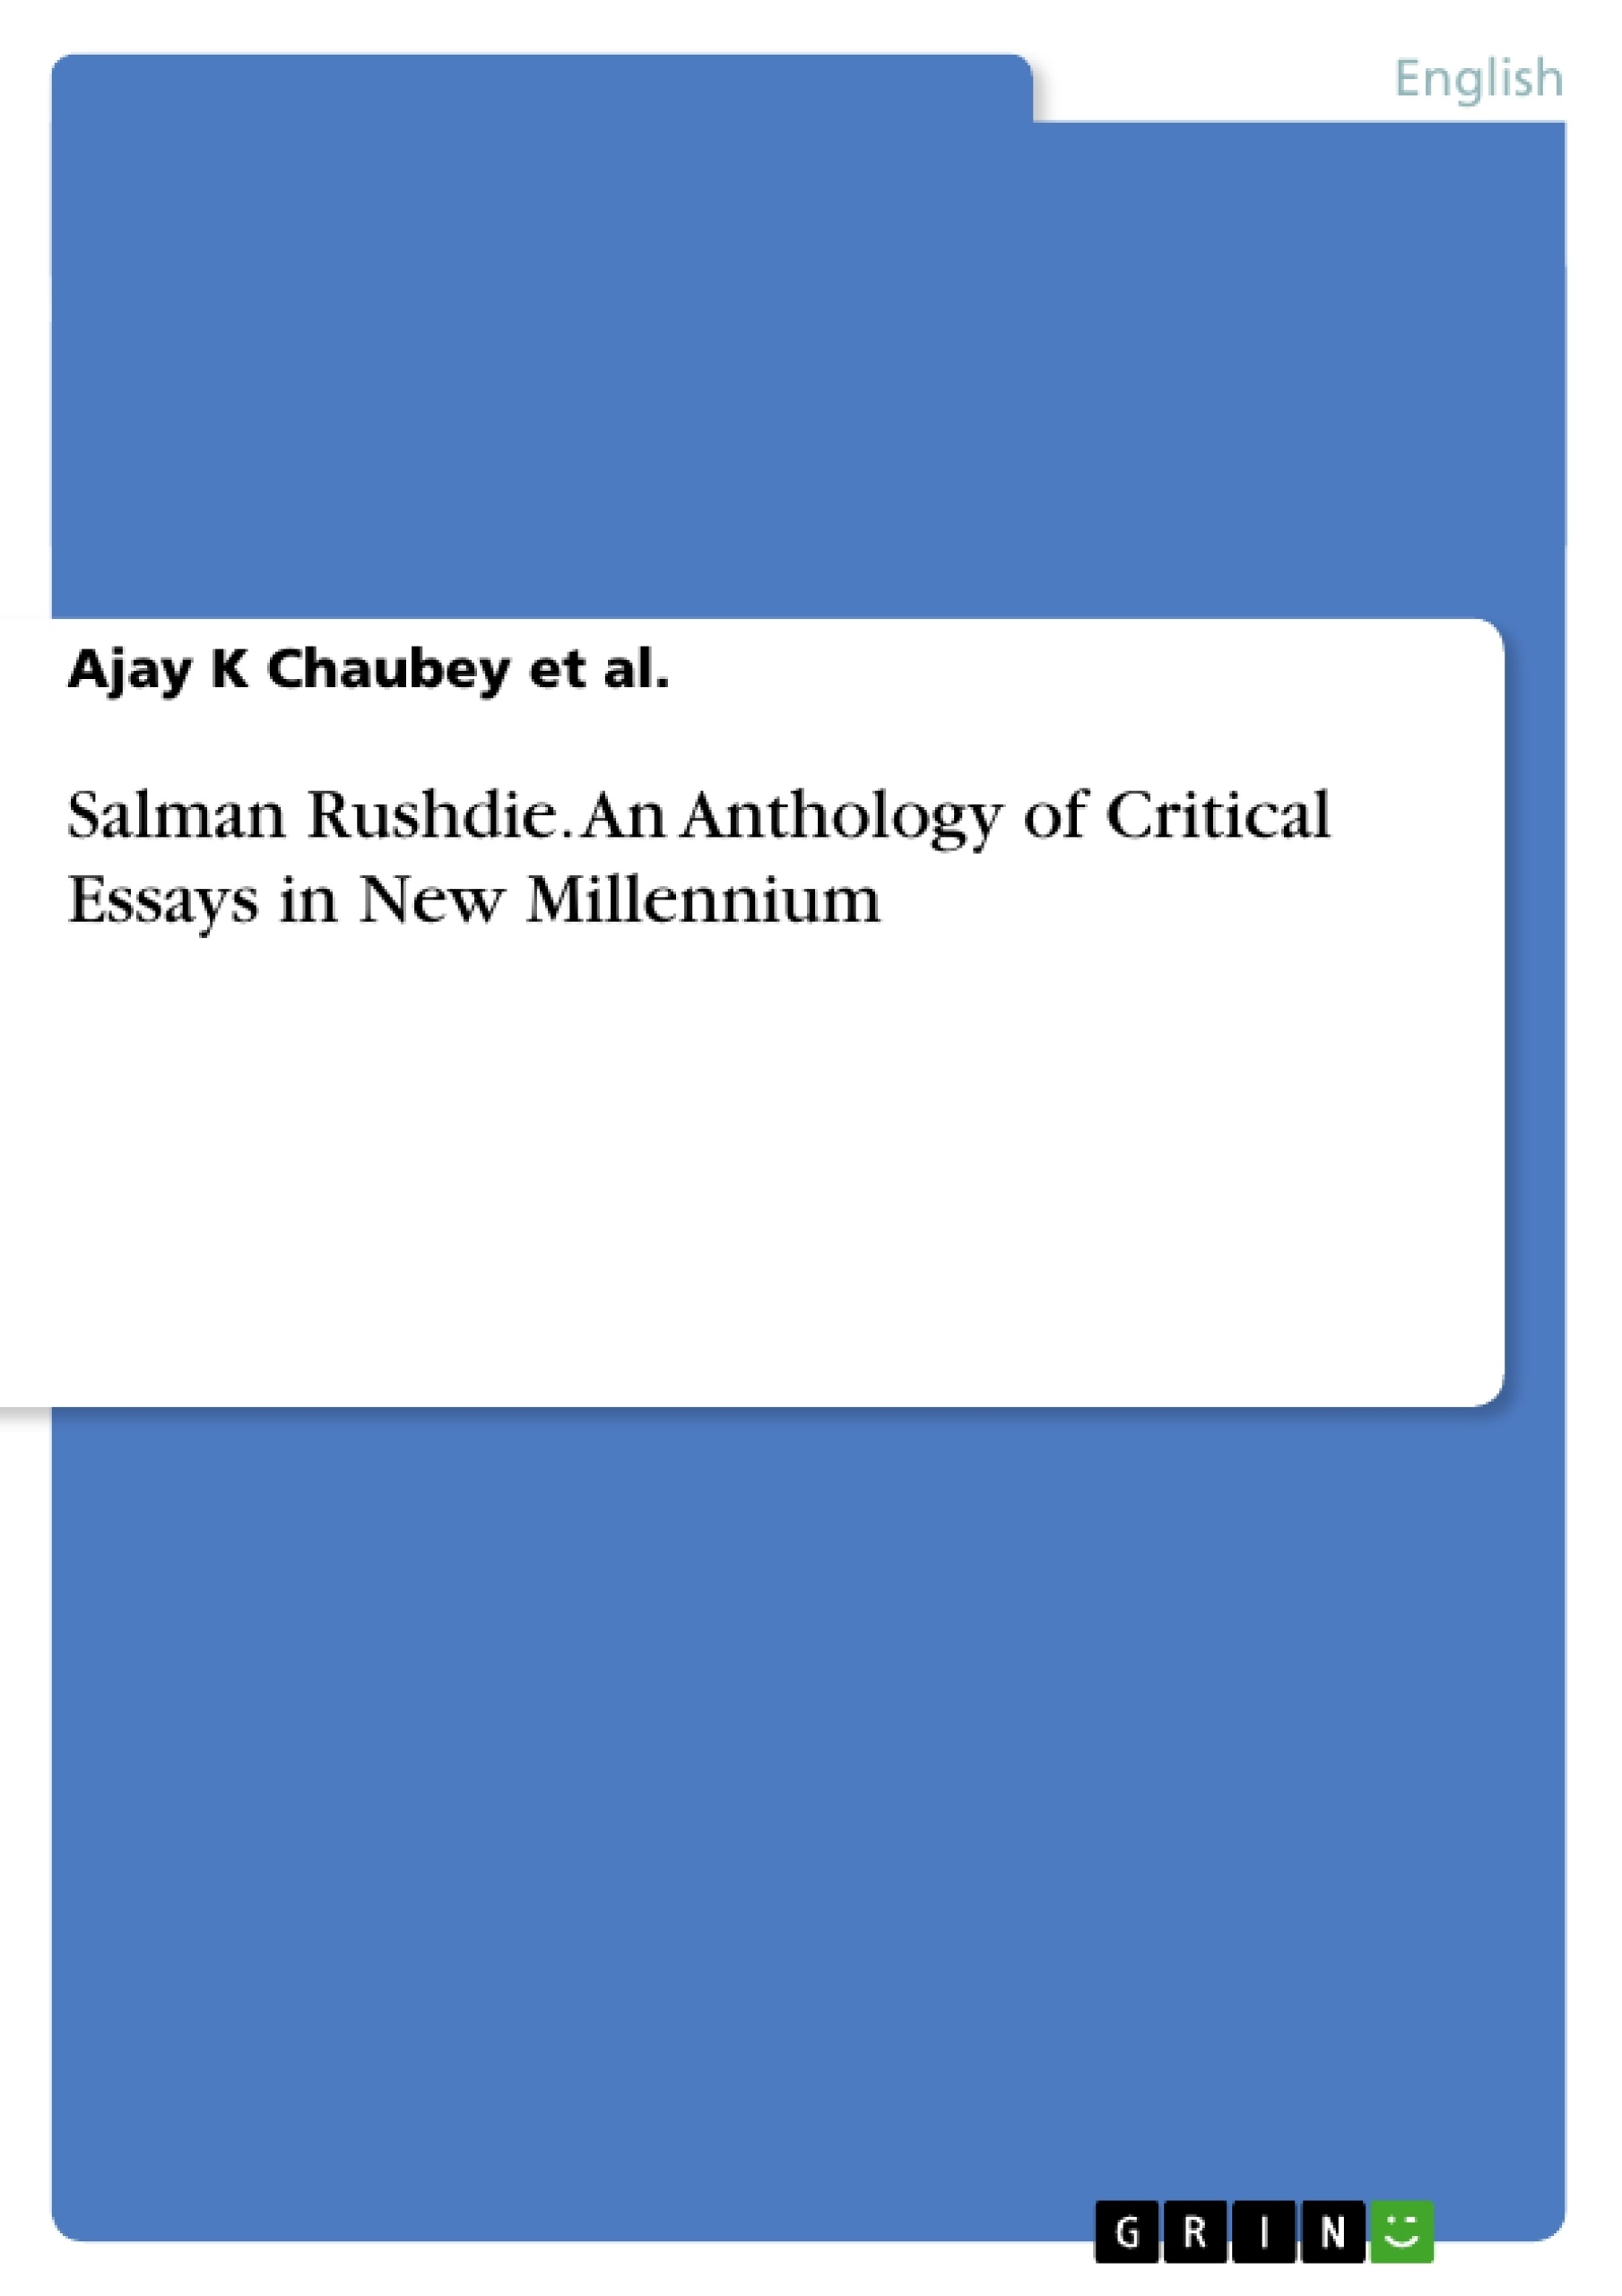 salman rushdie an anthology of critical essays in new millennium salman rushdie an anthology of critical essays in new millennium publish your master s thesis bachelor s thesis essay or term paper